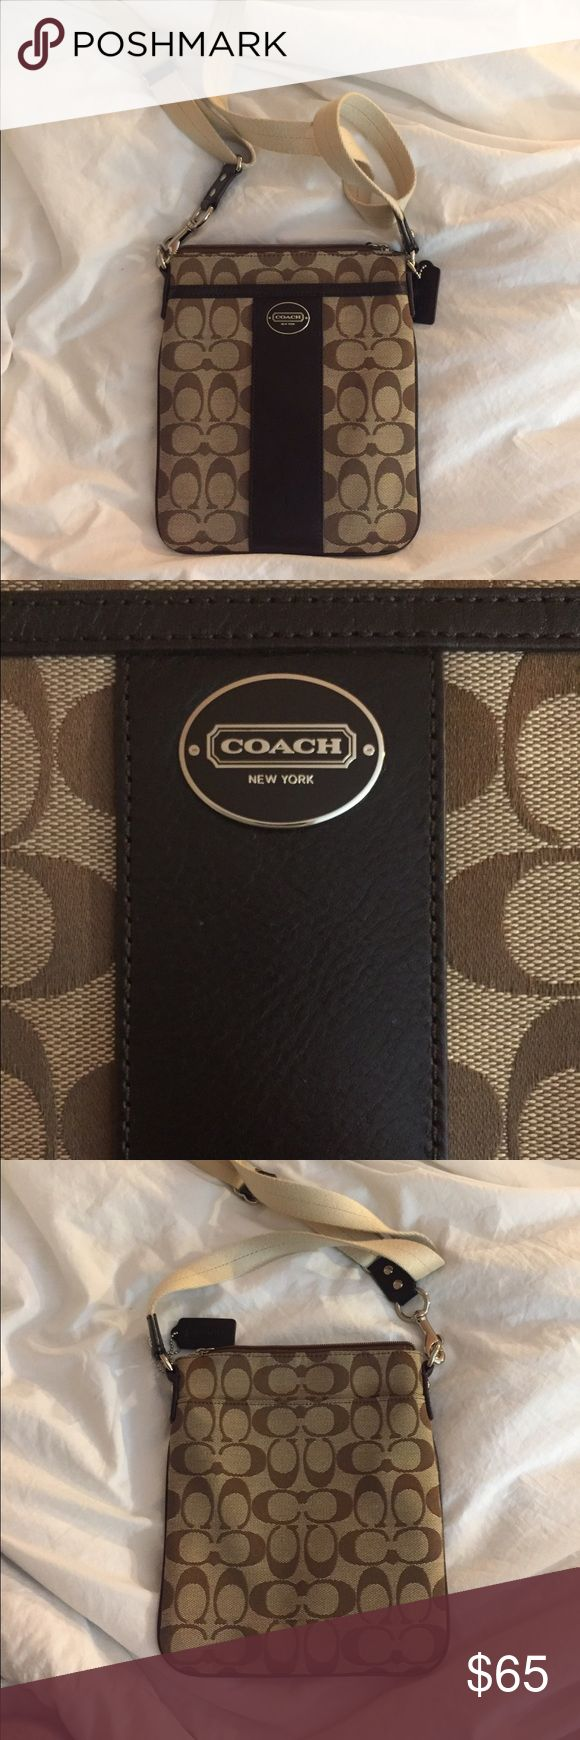 Coach Swingpack in signature fabric A timeless classic bag in near perfect condition with only one tiny dot stain near middle (see picture). This bag was only worn once or twice. Neutral fabric goes with any outfit! Coach Bags Crossbody Bags